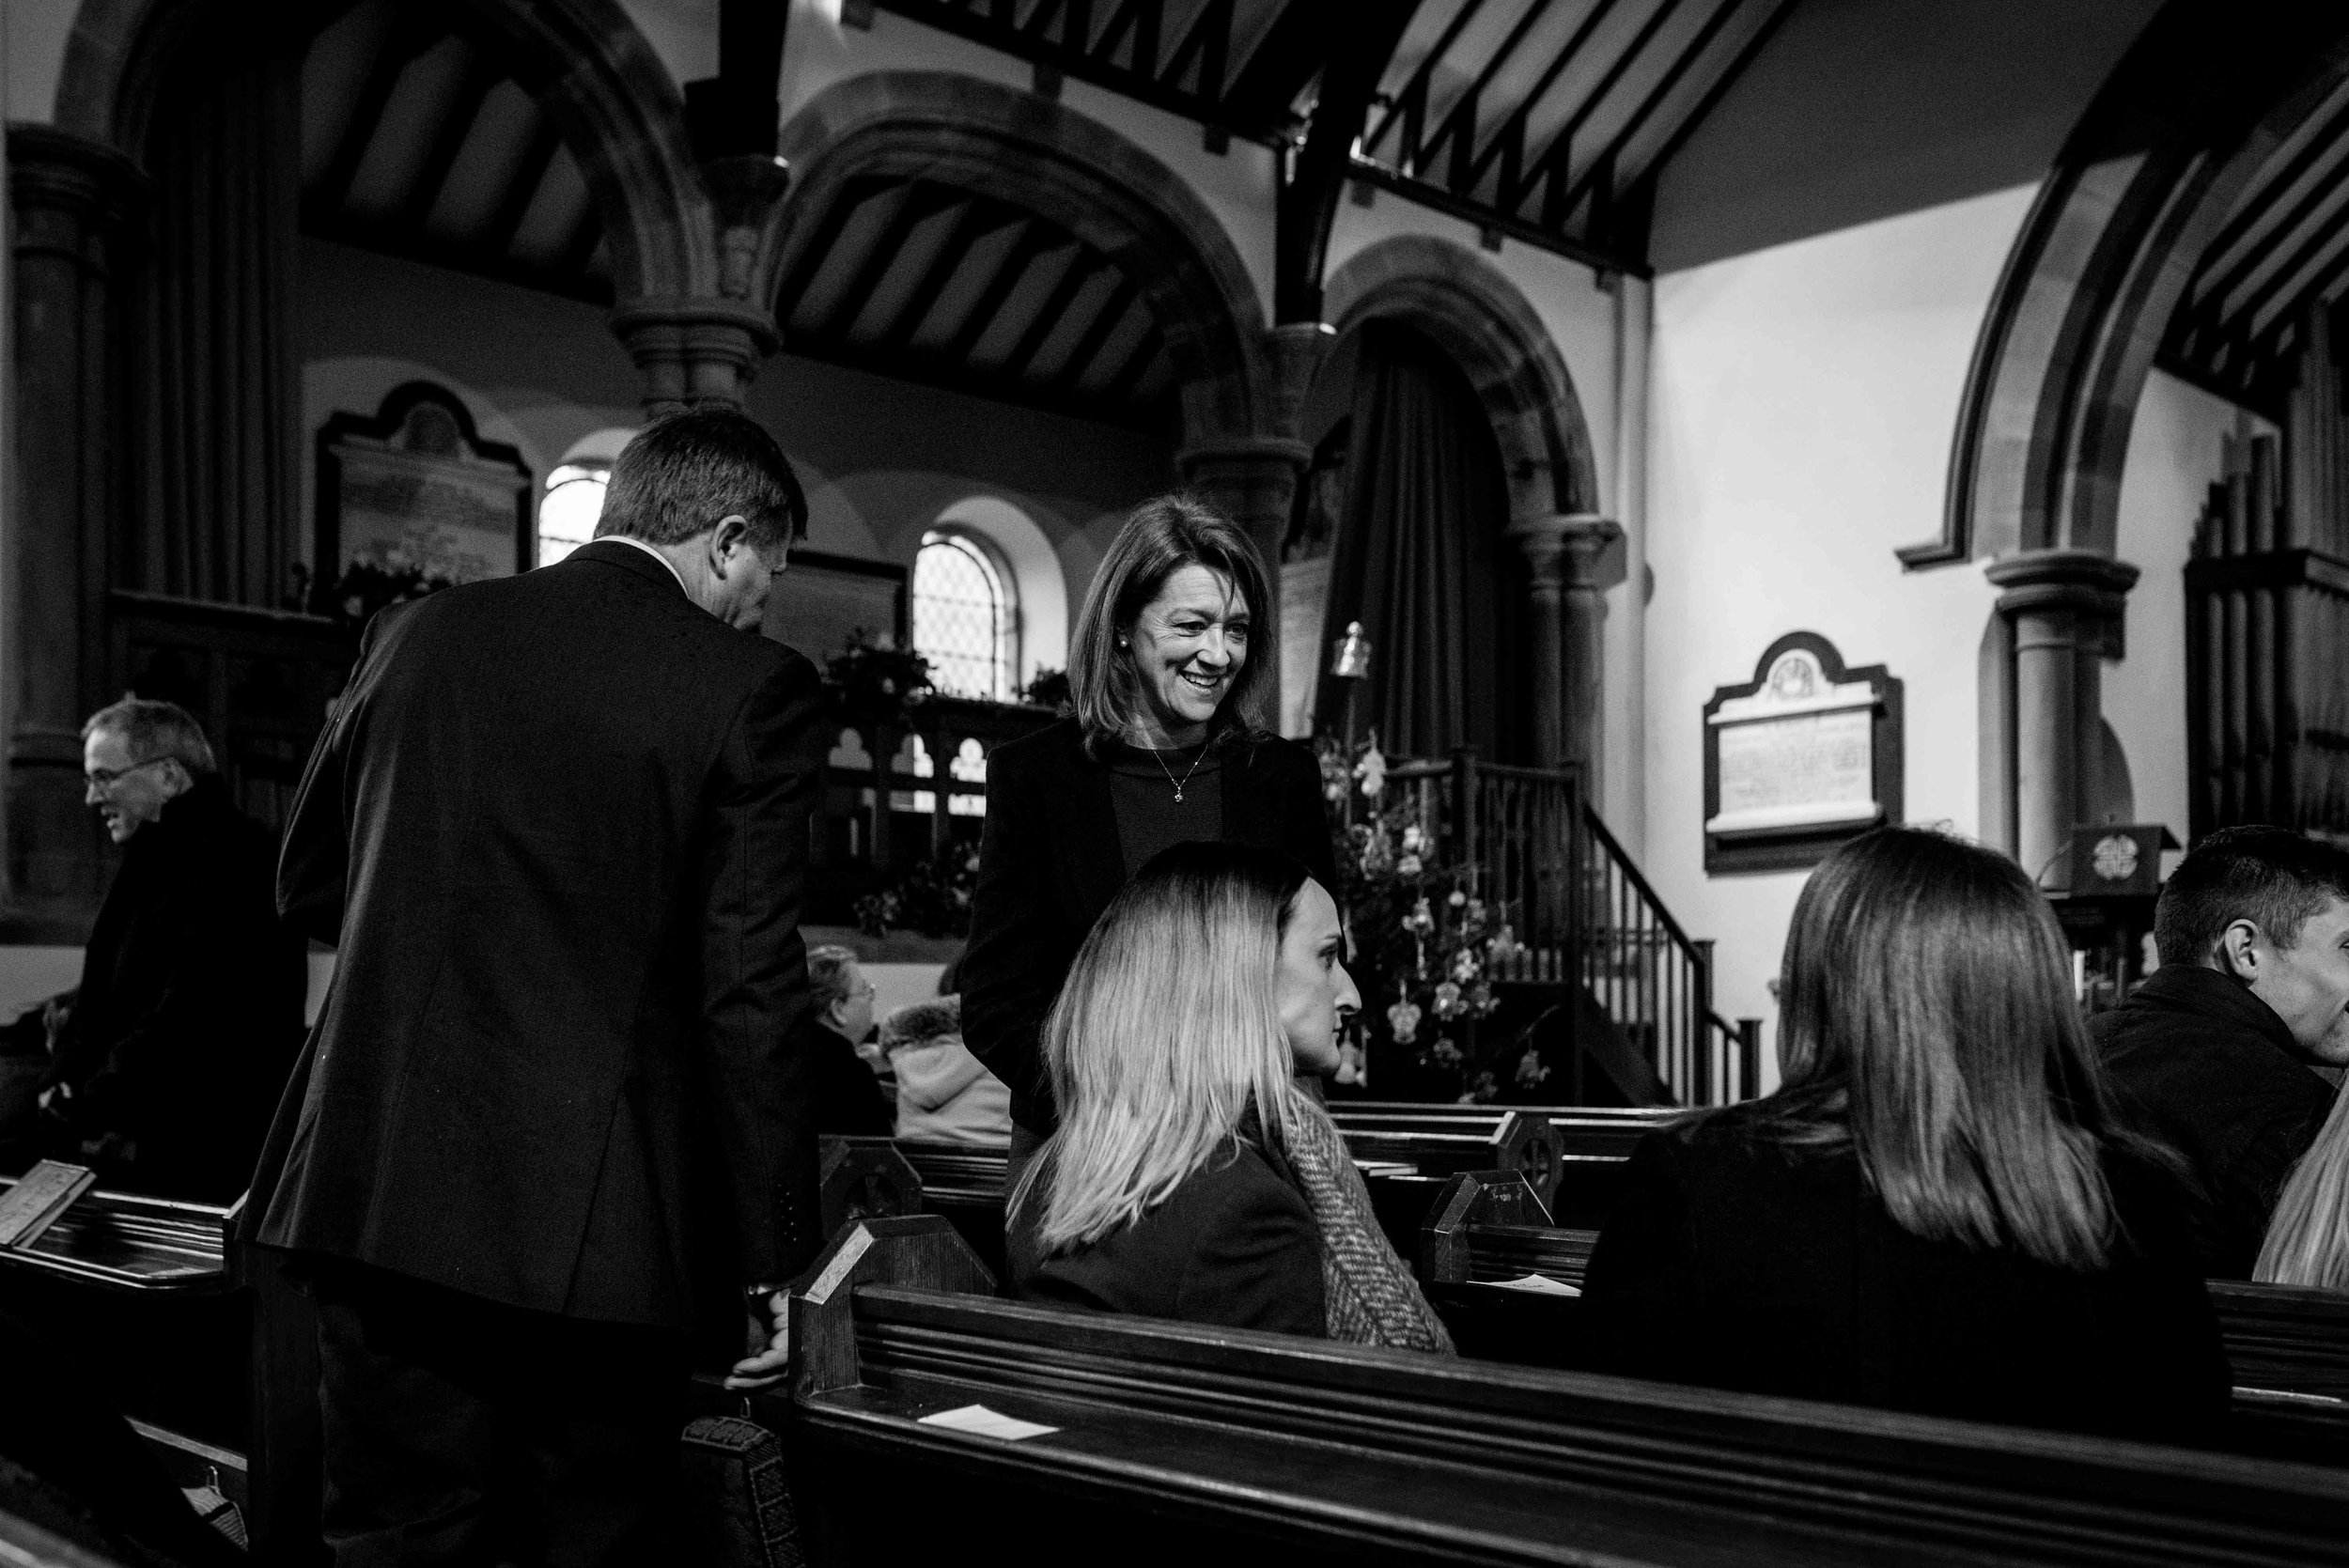 Guests start arriving at the church for the Christening of baby Harry.